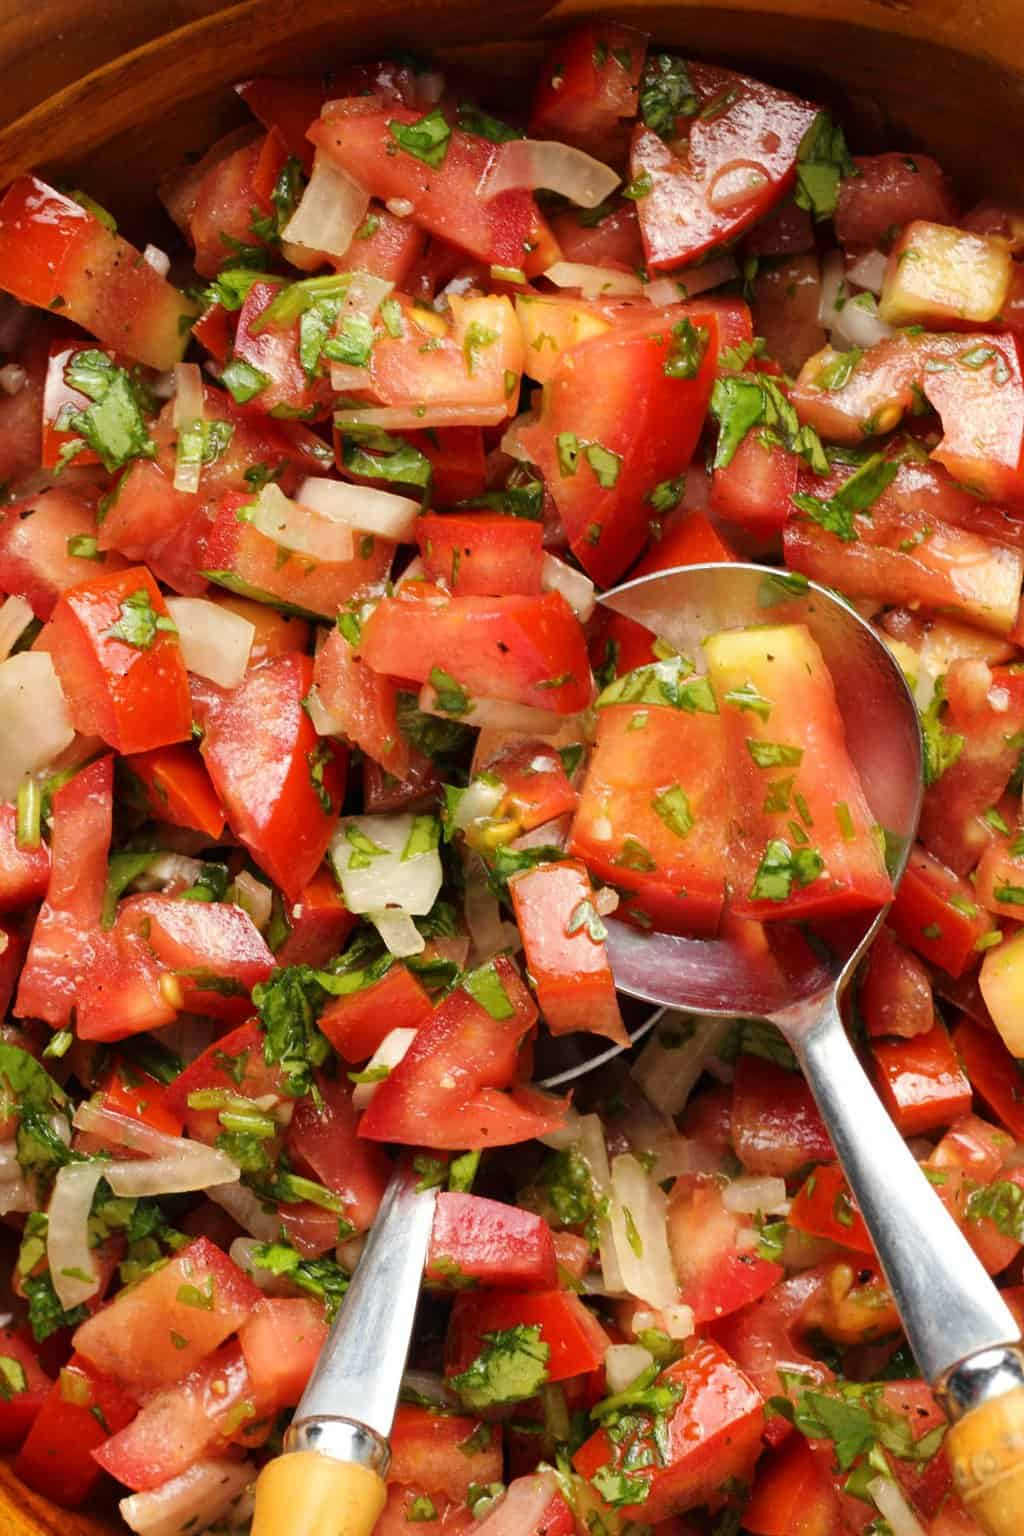 Pico de gallo in a wooden bowl with spoons.